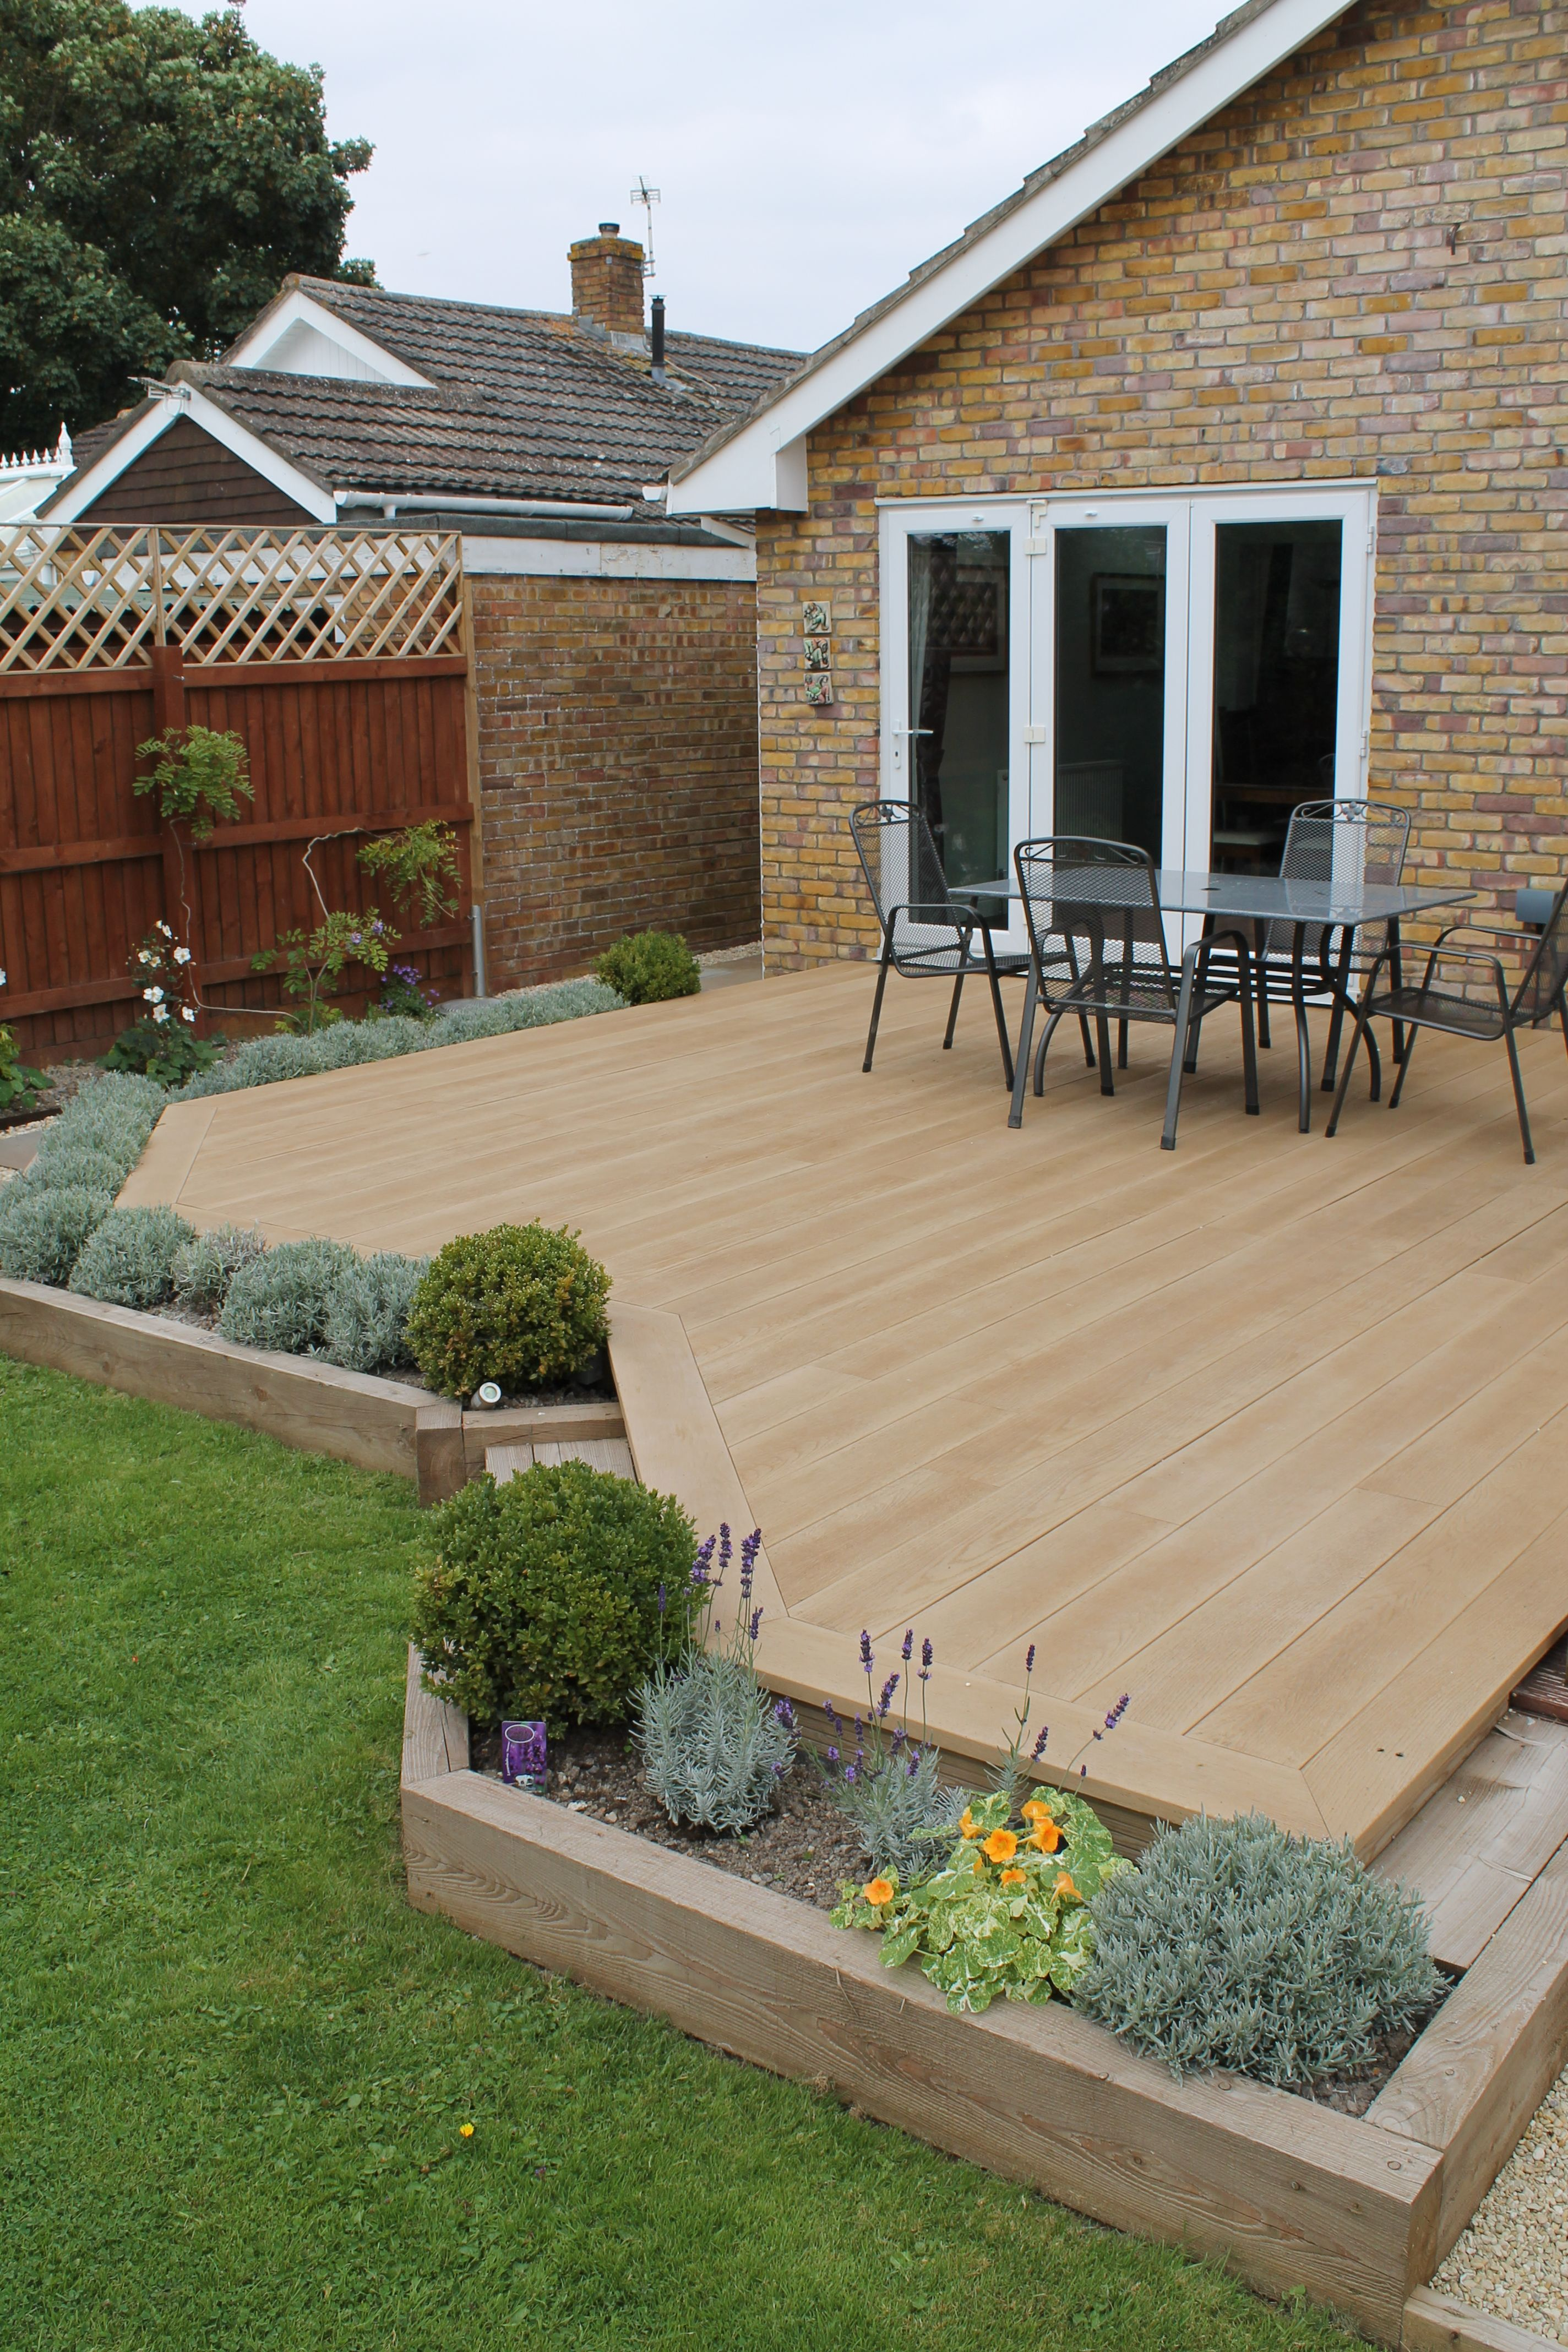 A deck terrace surrounded by planters made with sleepers ...